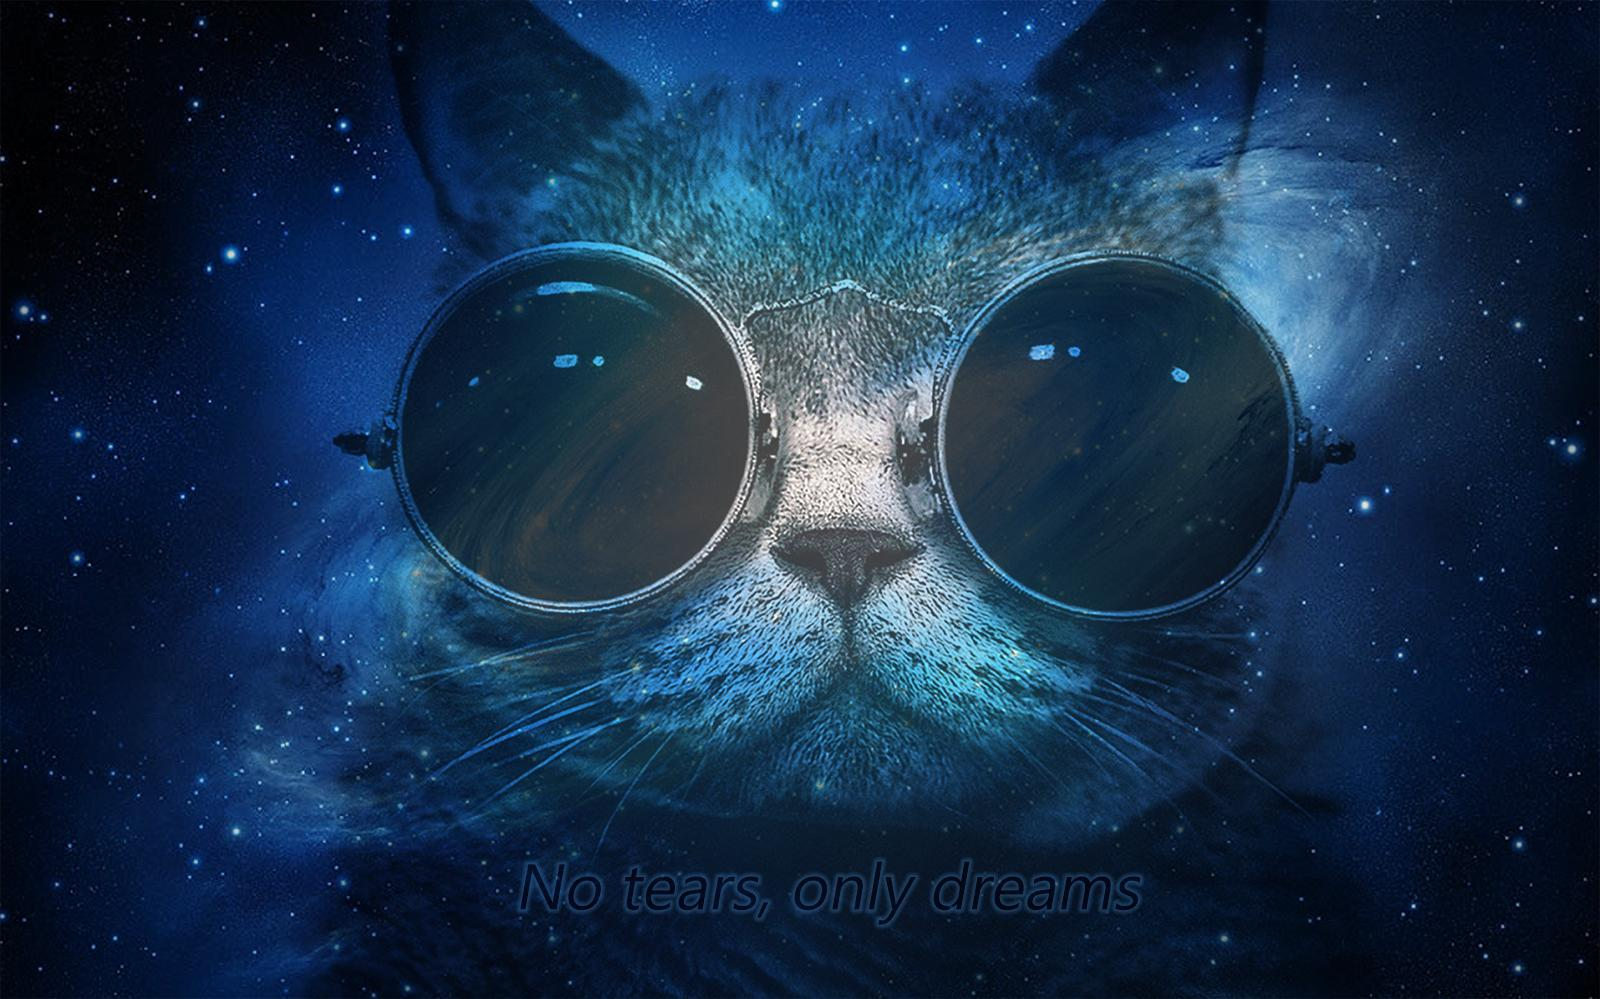 Hd Space Cats Wallpaper Download